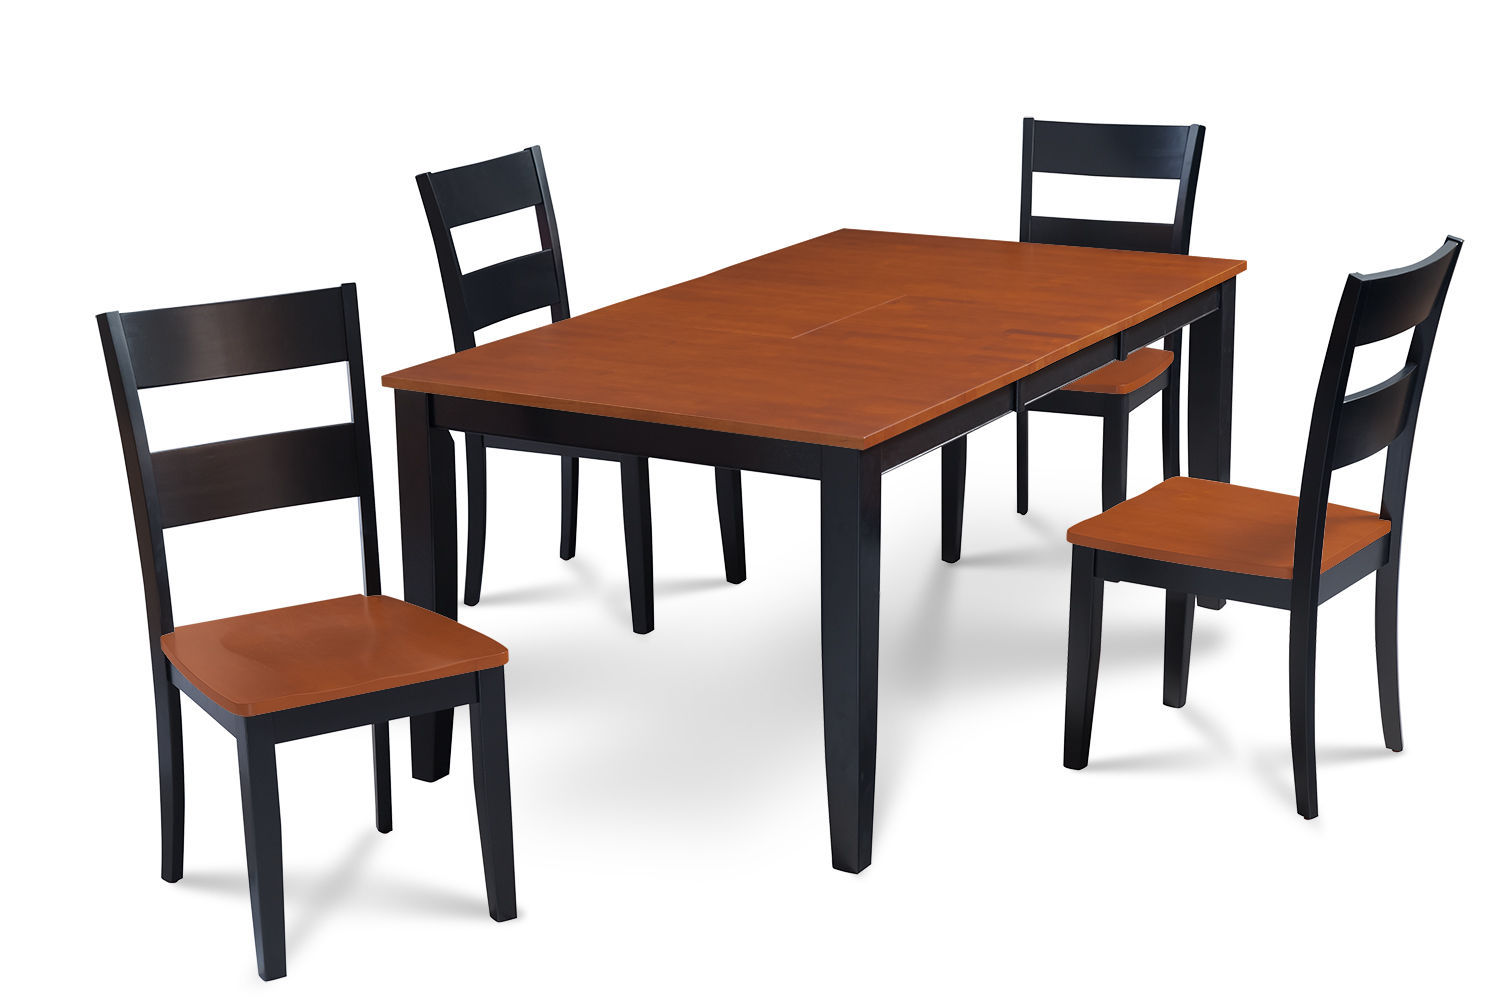 """RECTANGULAR DINING ROOM SET WITH 18"""" LEAF WOOD SEAT CHAIRS IN BLACK & CHERRY"""